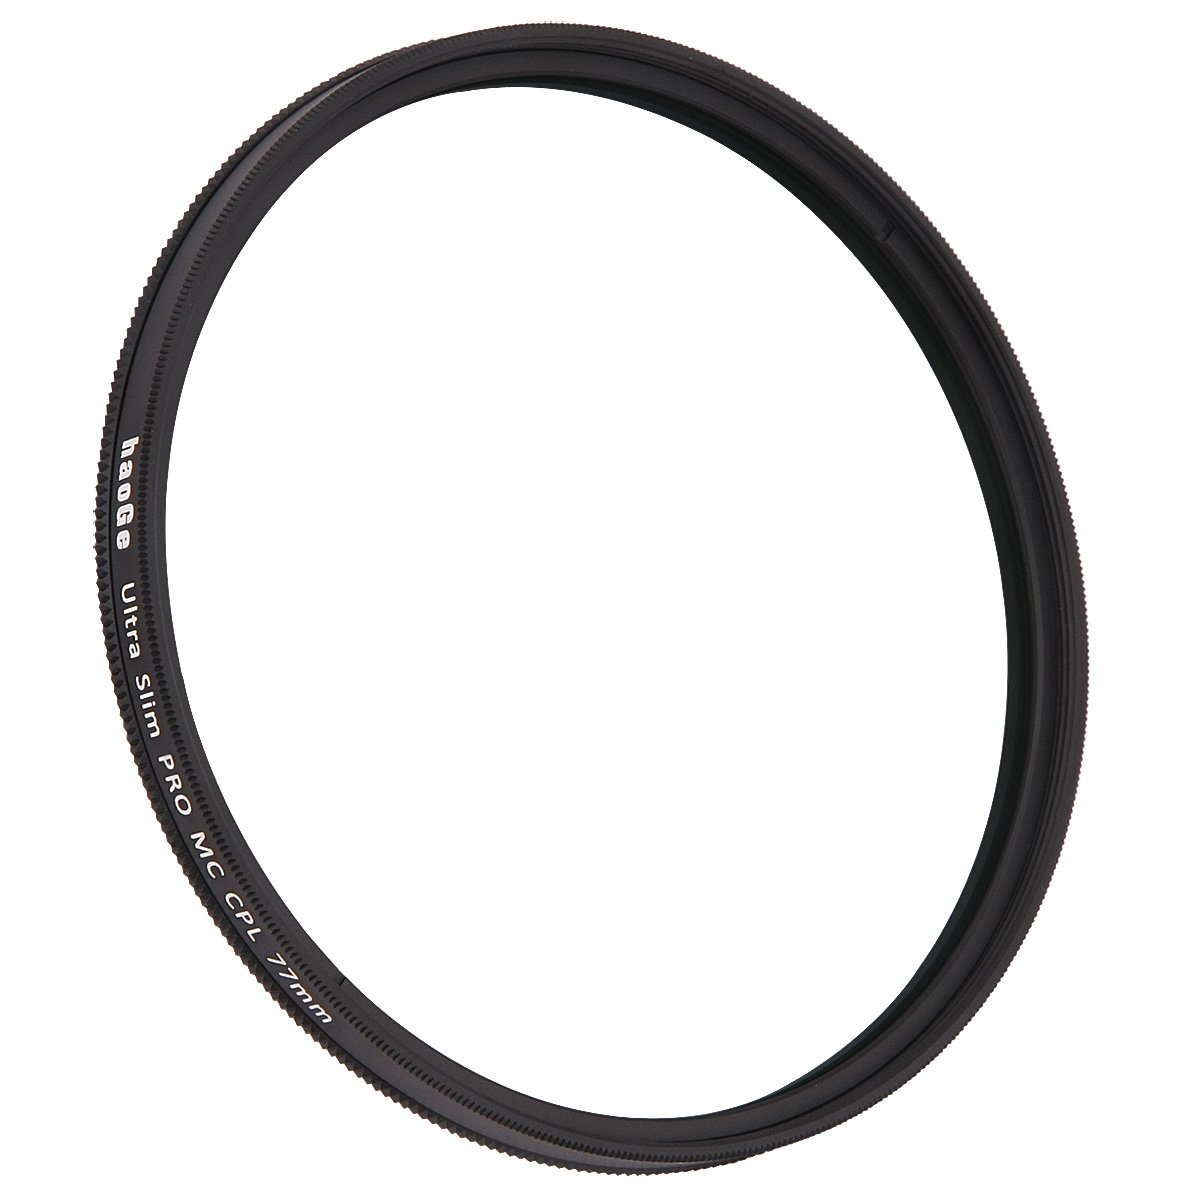 24-70mm f//4L Lens Haoge 77mm MC CPL Multicoated Circular Polarizer Polarizing Lens Filter for Canon 70-200mm f//2.8L 24-105mm f//3.5-5.6 100-400mm f//4.5-5.6L 24-105mm f//4L is 17-40mm f4L